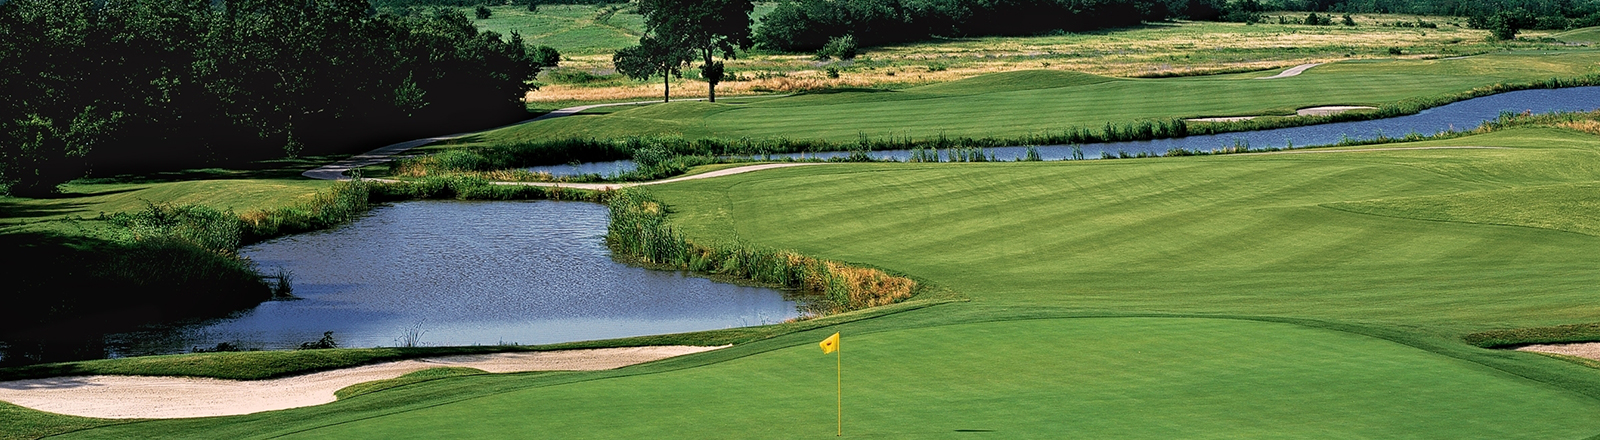 Buffalo Creek Golf Club Header